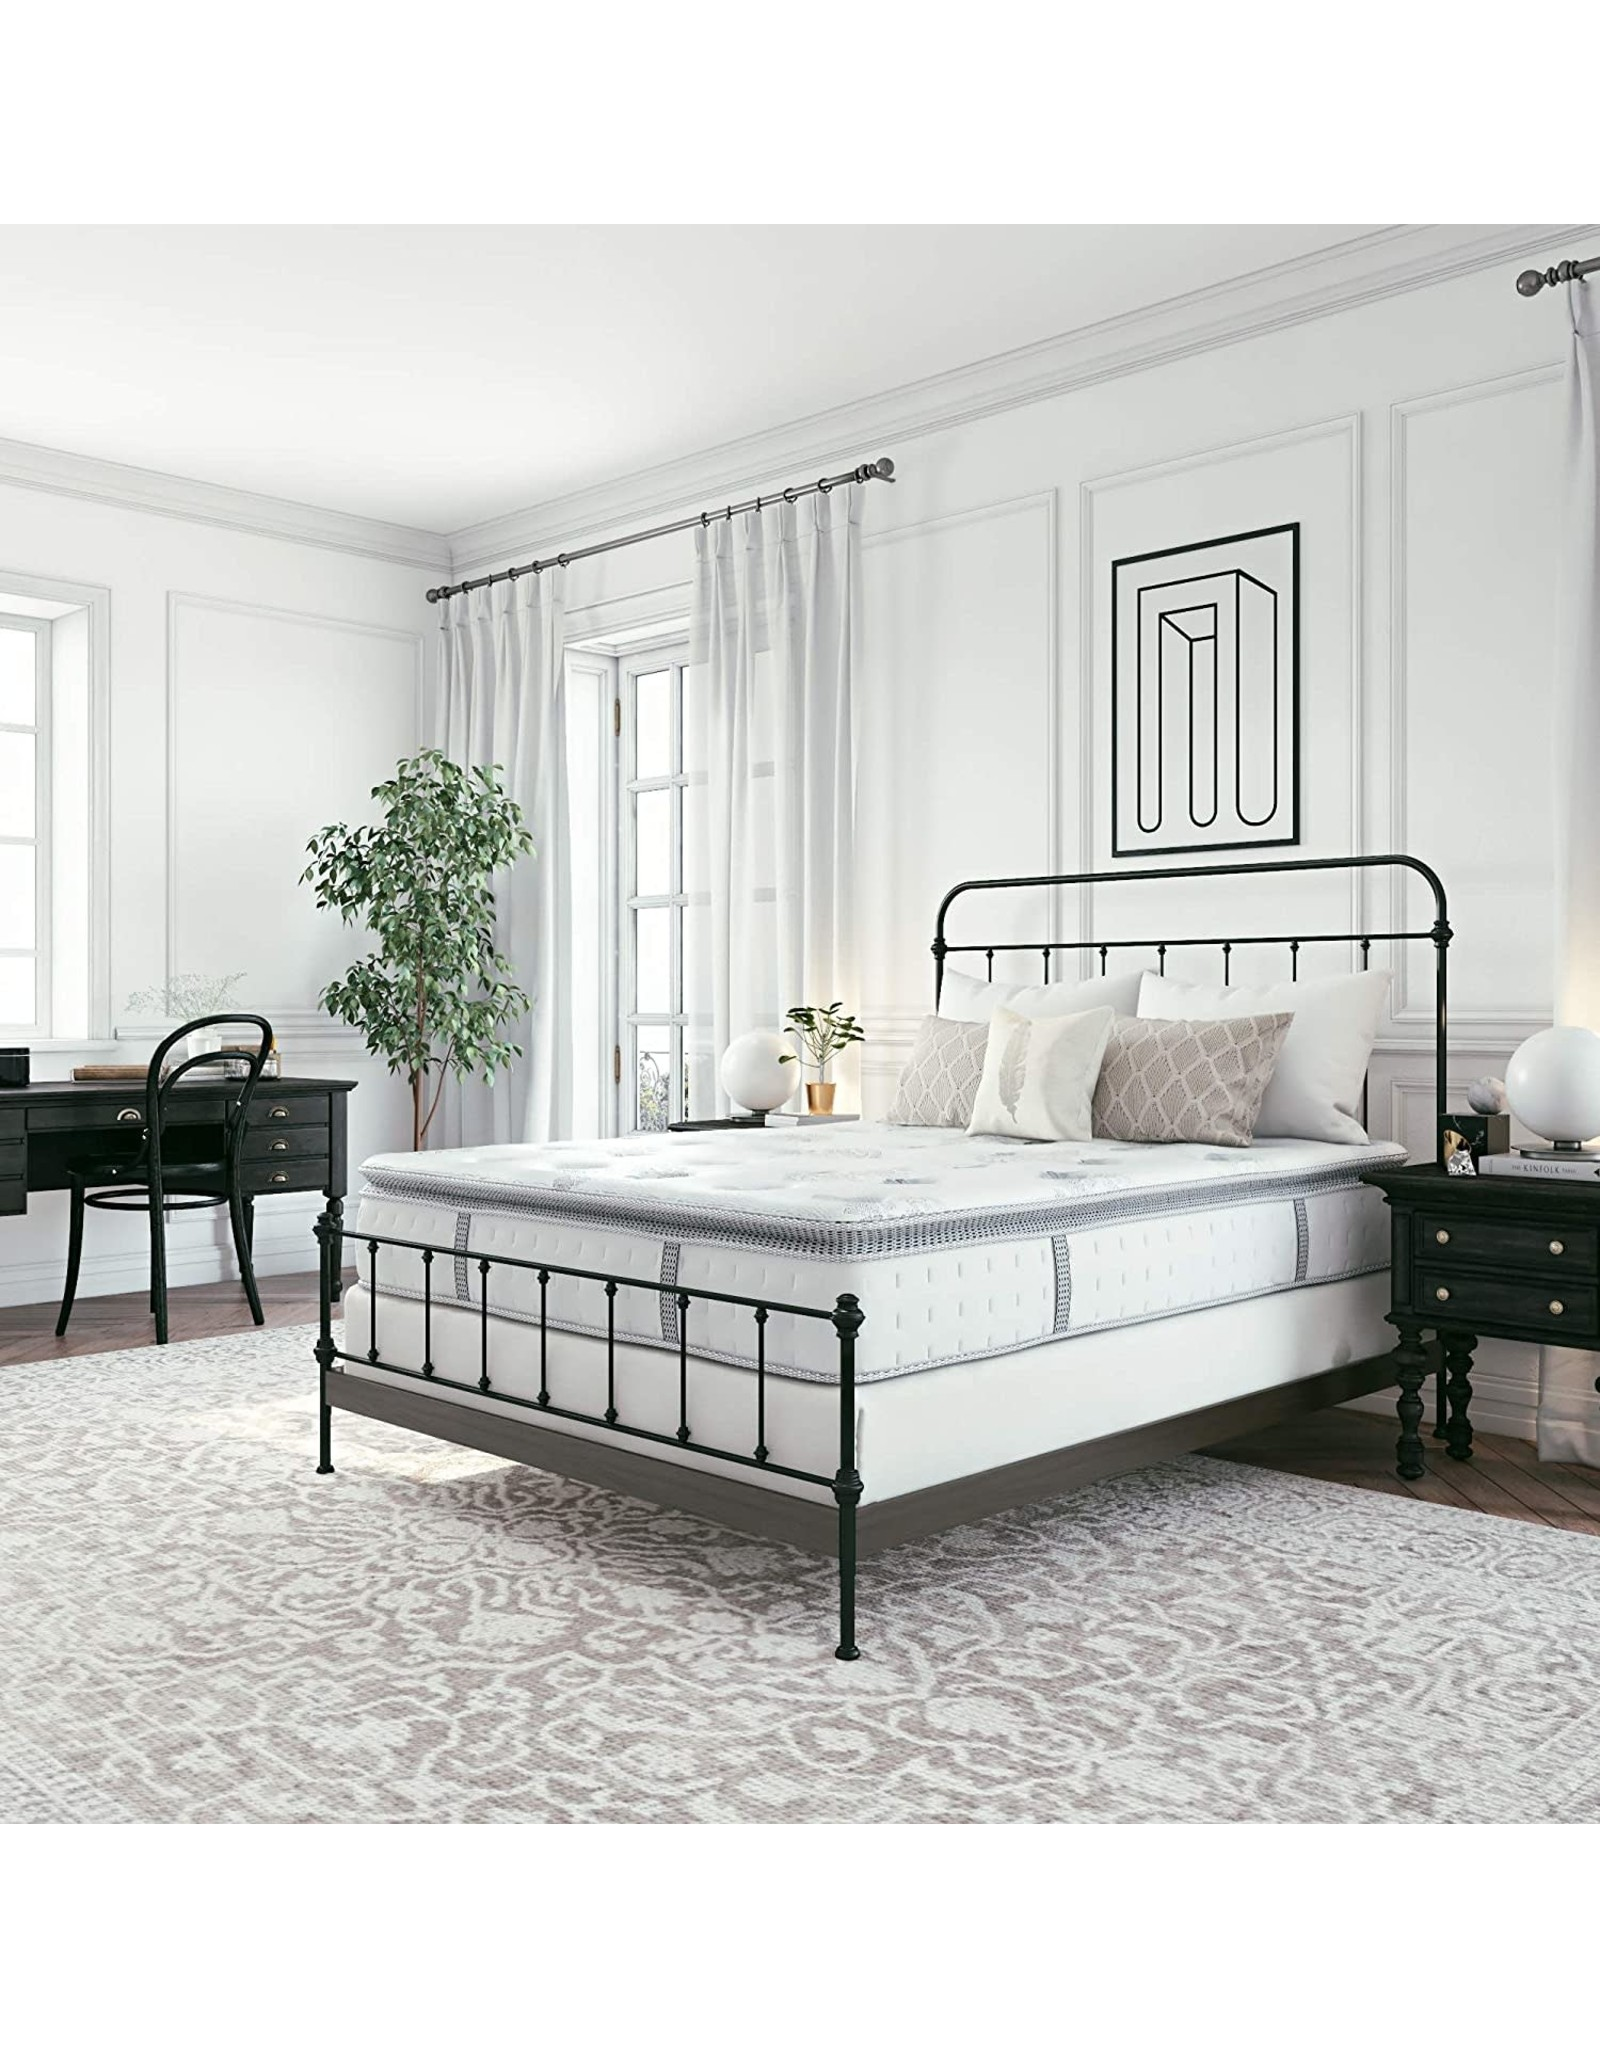 Classic Brands Classic Brands Mercer Cool Gel Memory Foam and Innerspring Hybrid 12-Inch Pillow Top Mattress  Bed-in-a-Box California King